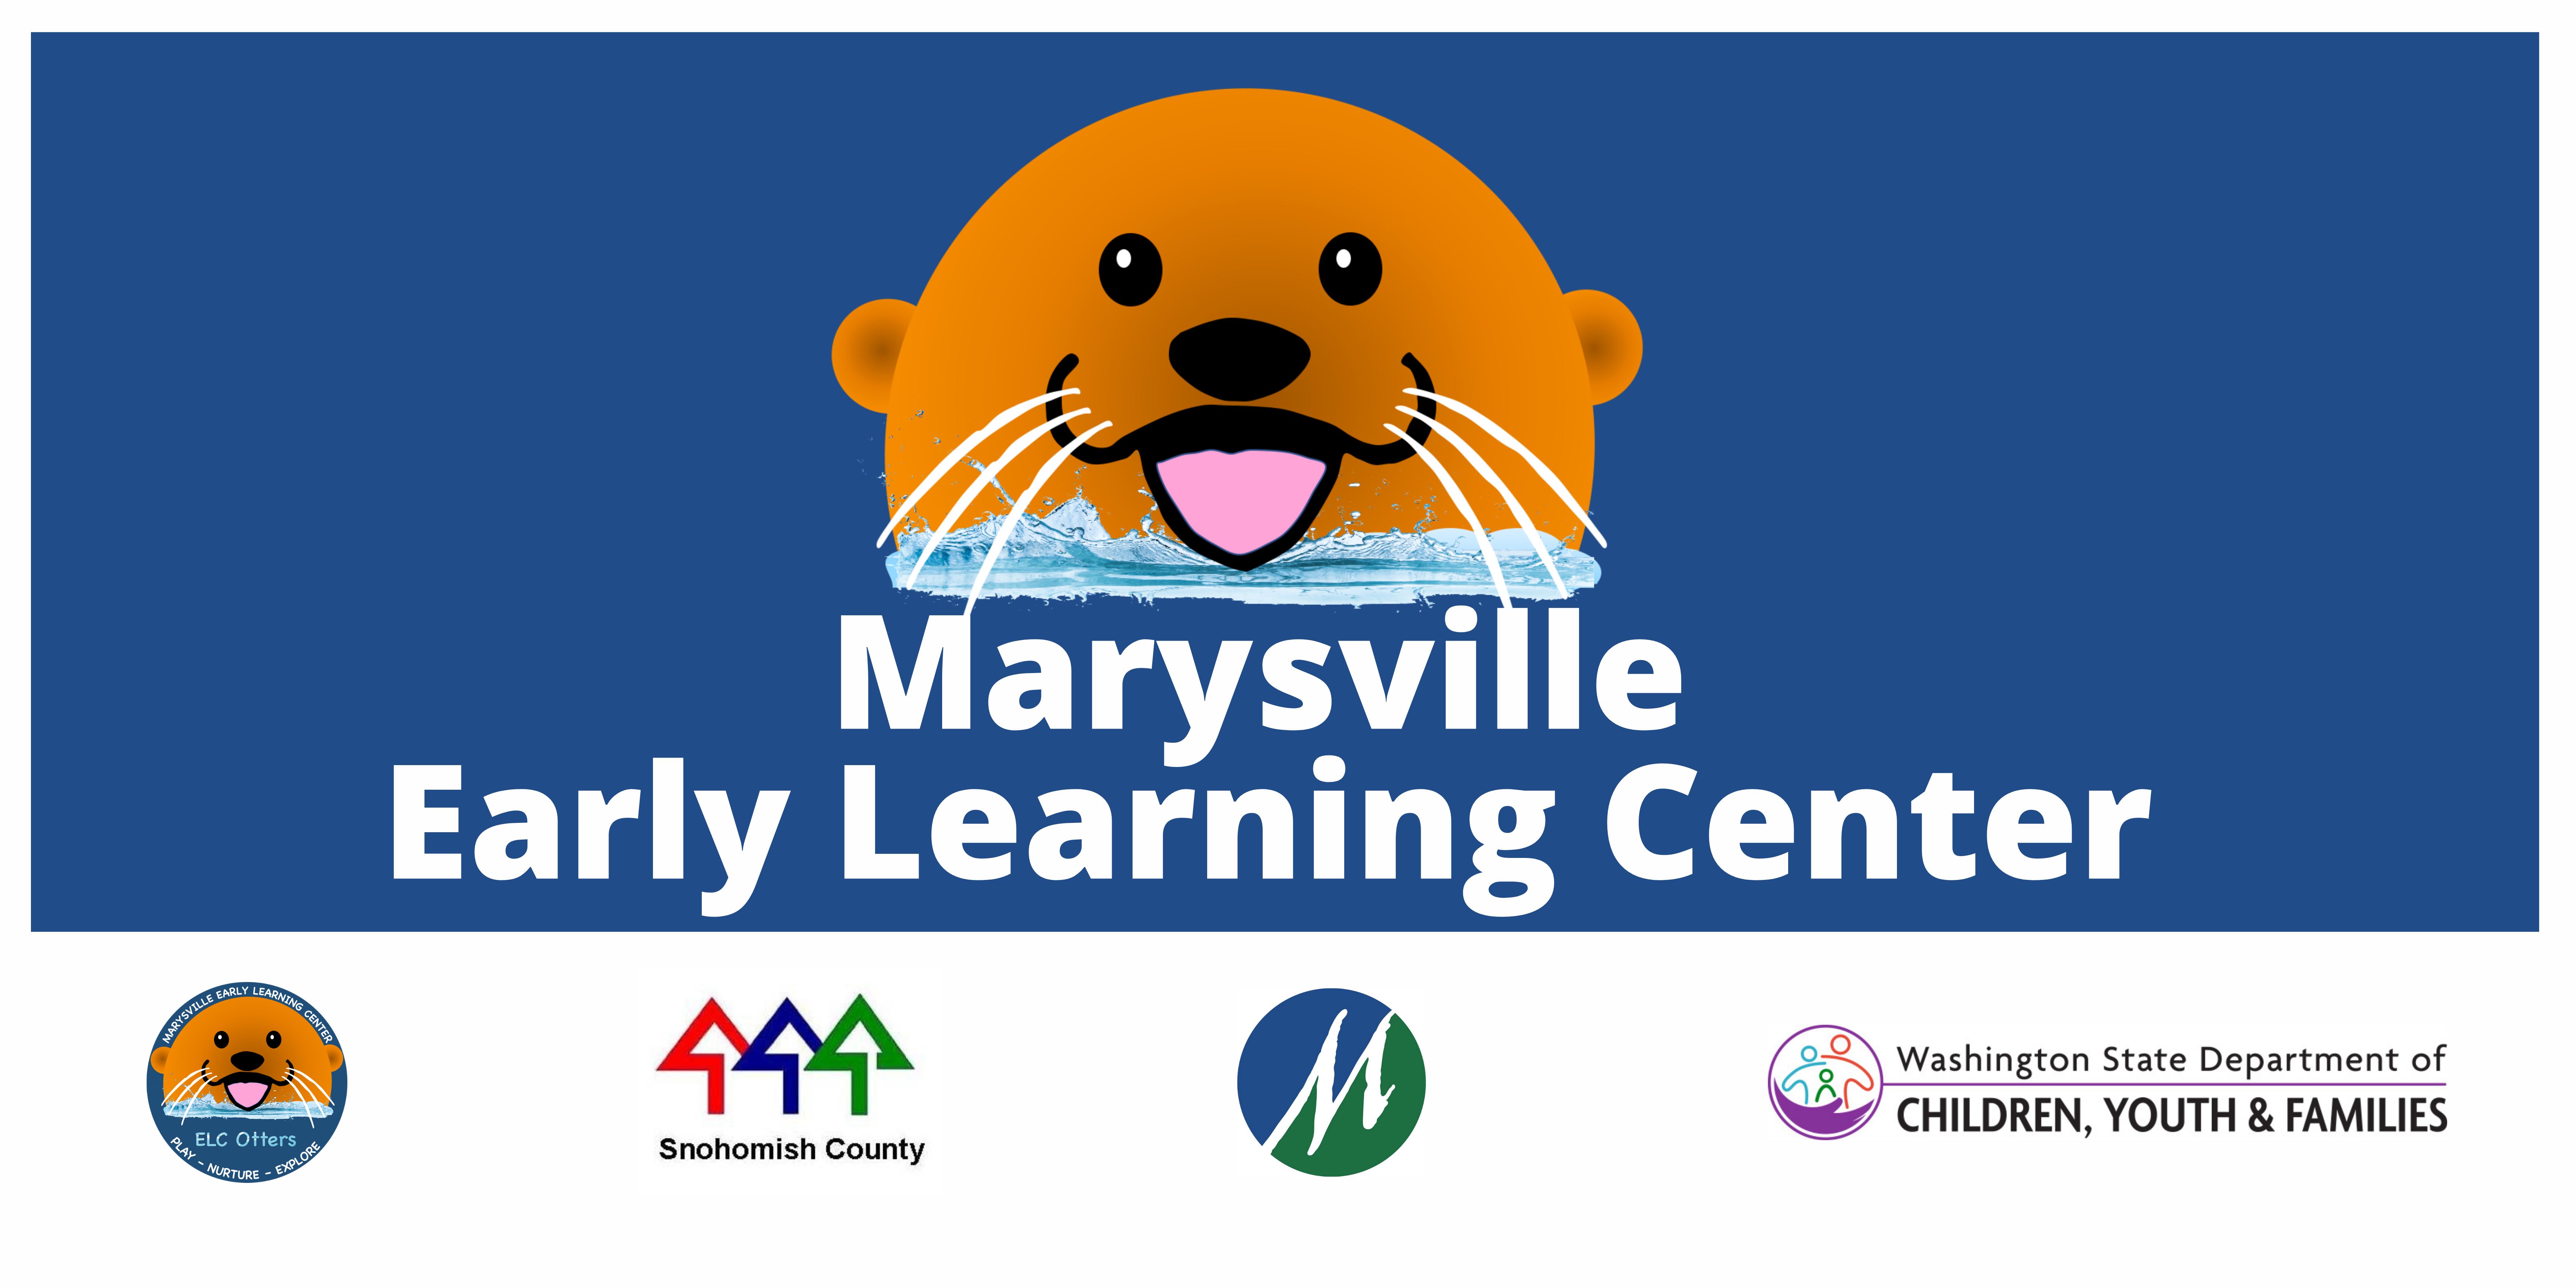 Marysville School District Early Learning Center